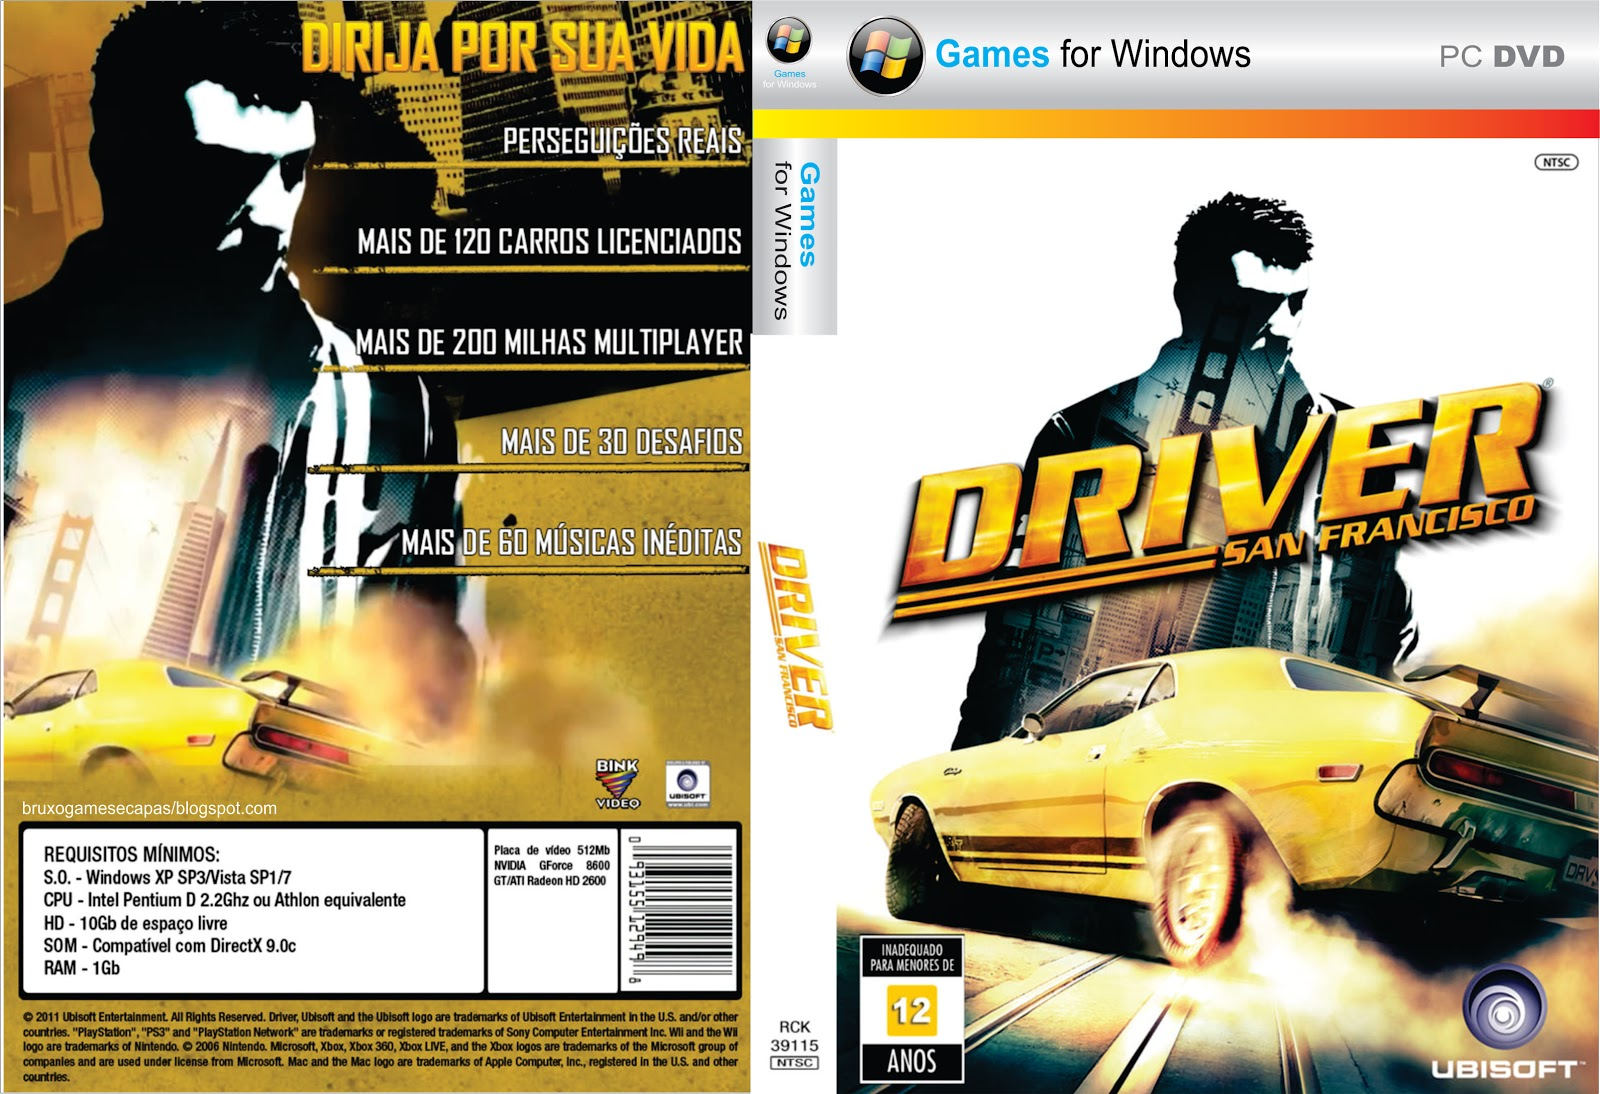 crack for driver san francisco pc